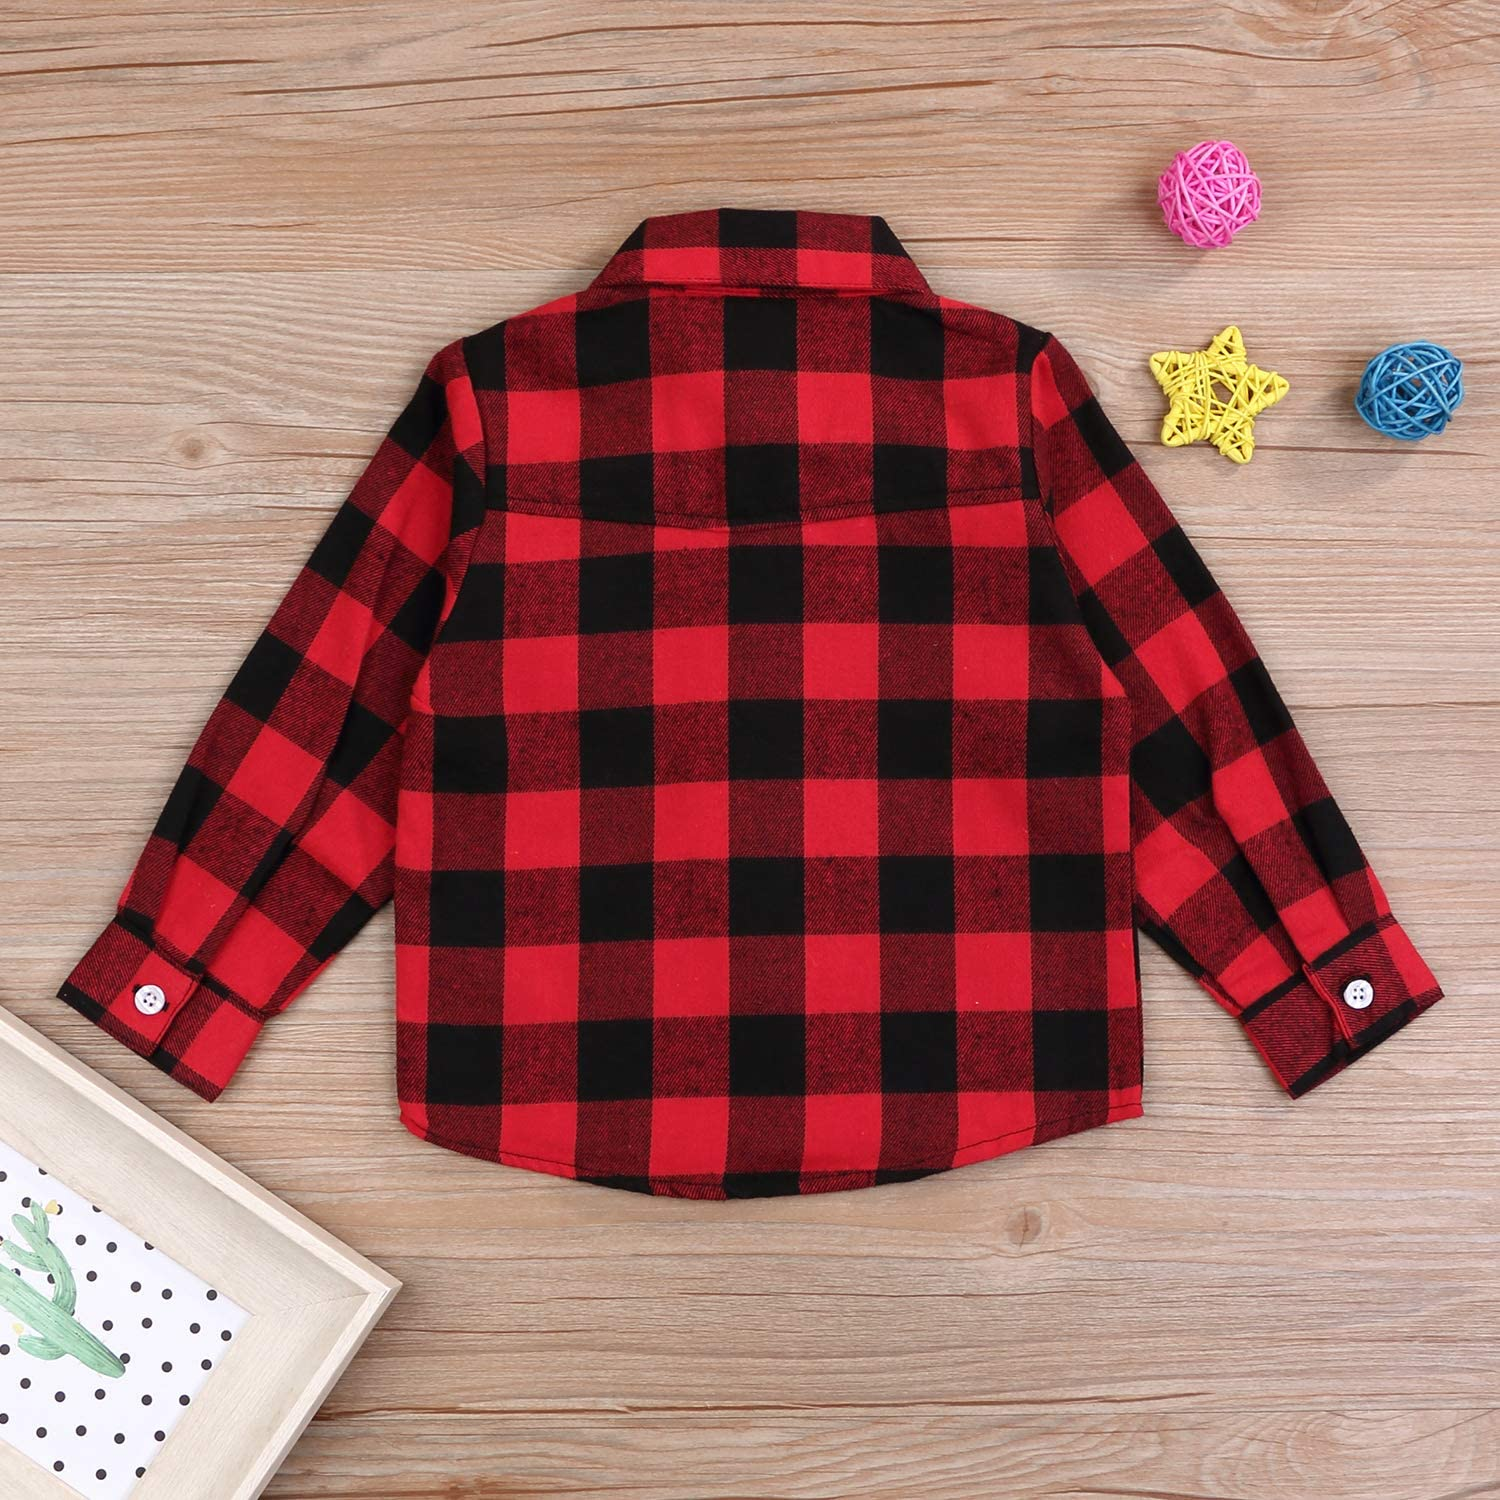 Kids Little Boys Girls Baby Long Sleeve Button Down Red Plaid Flannel Shirt Plaid Girl Boy NB-6T Red, 4T 3-4 Years